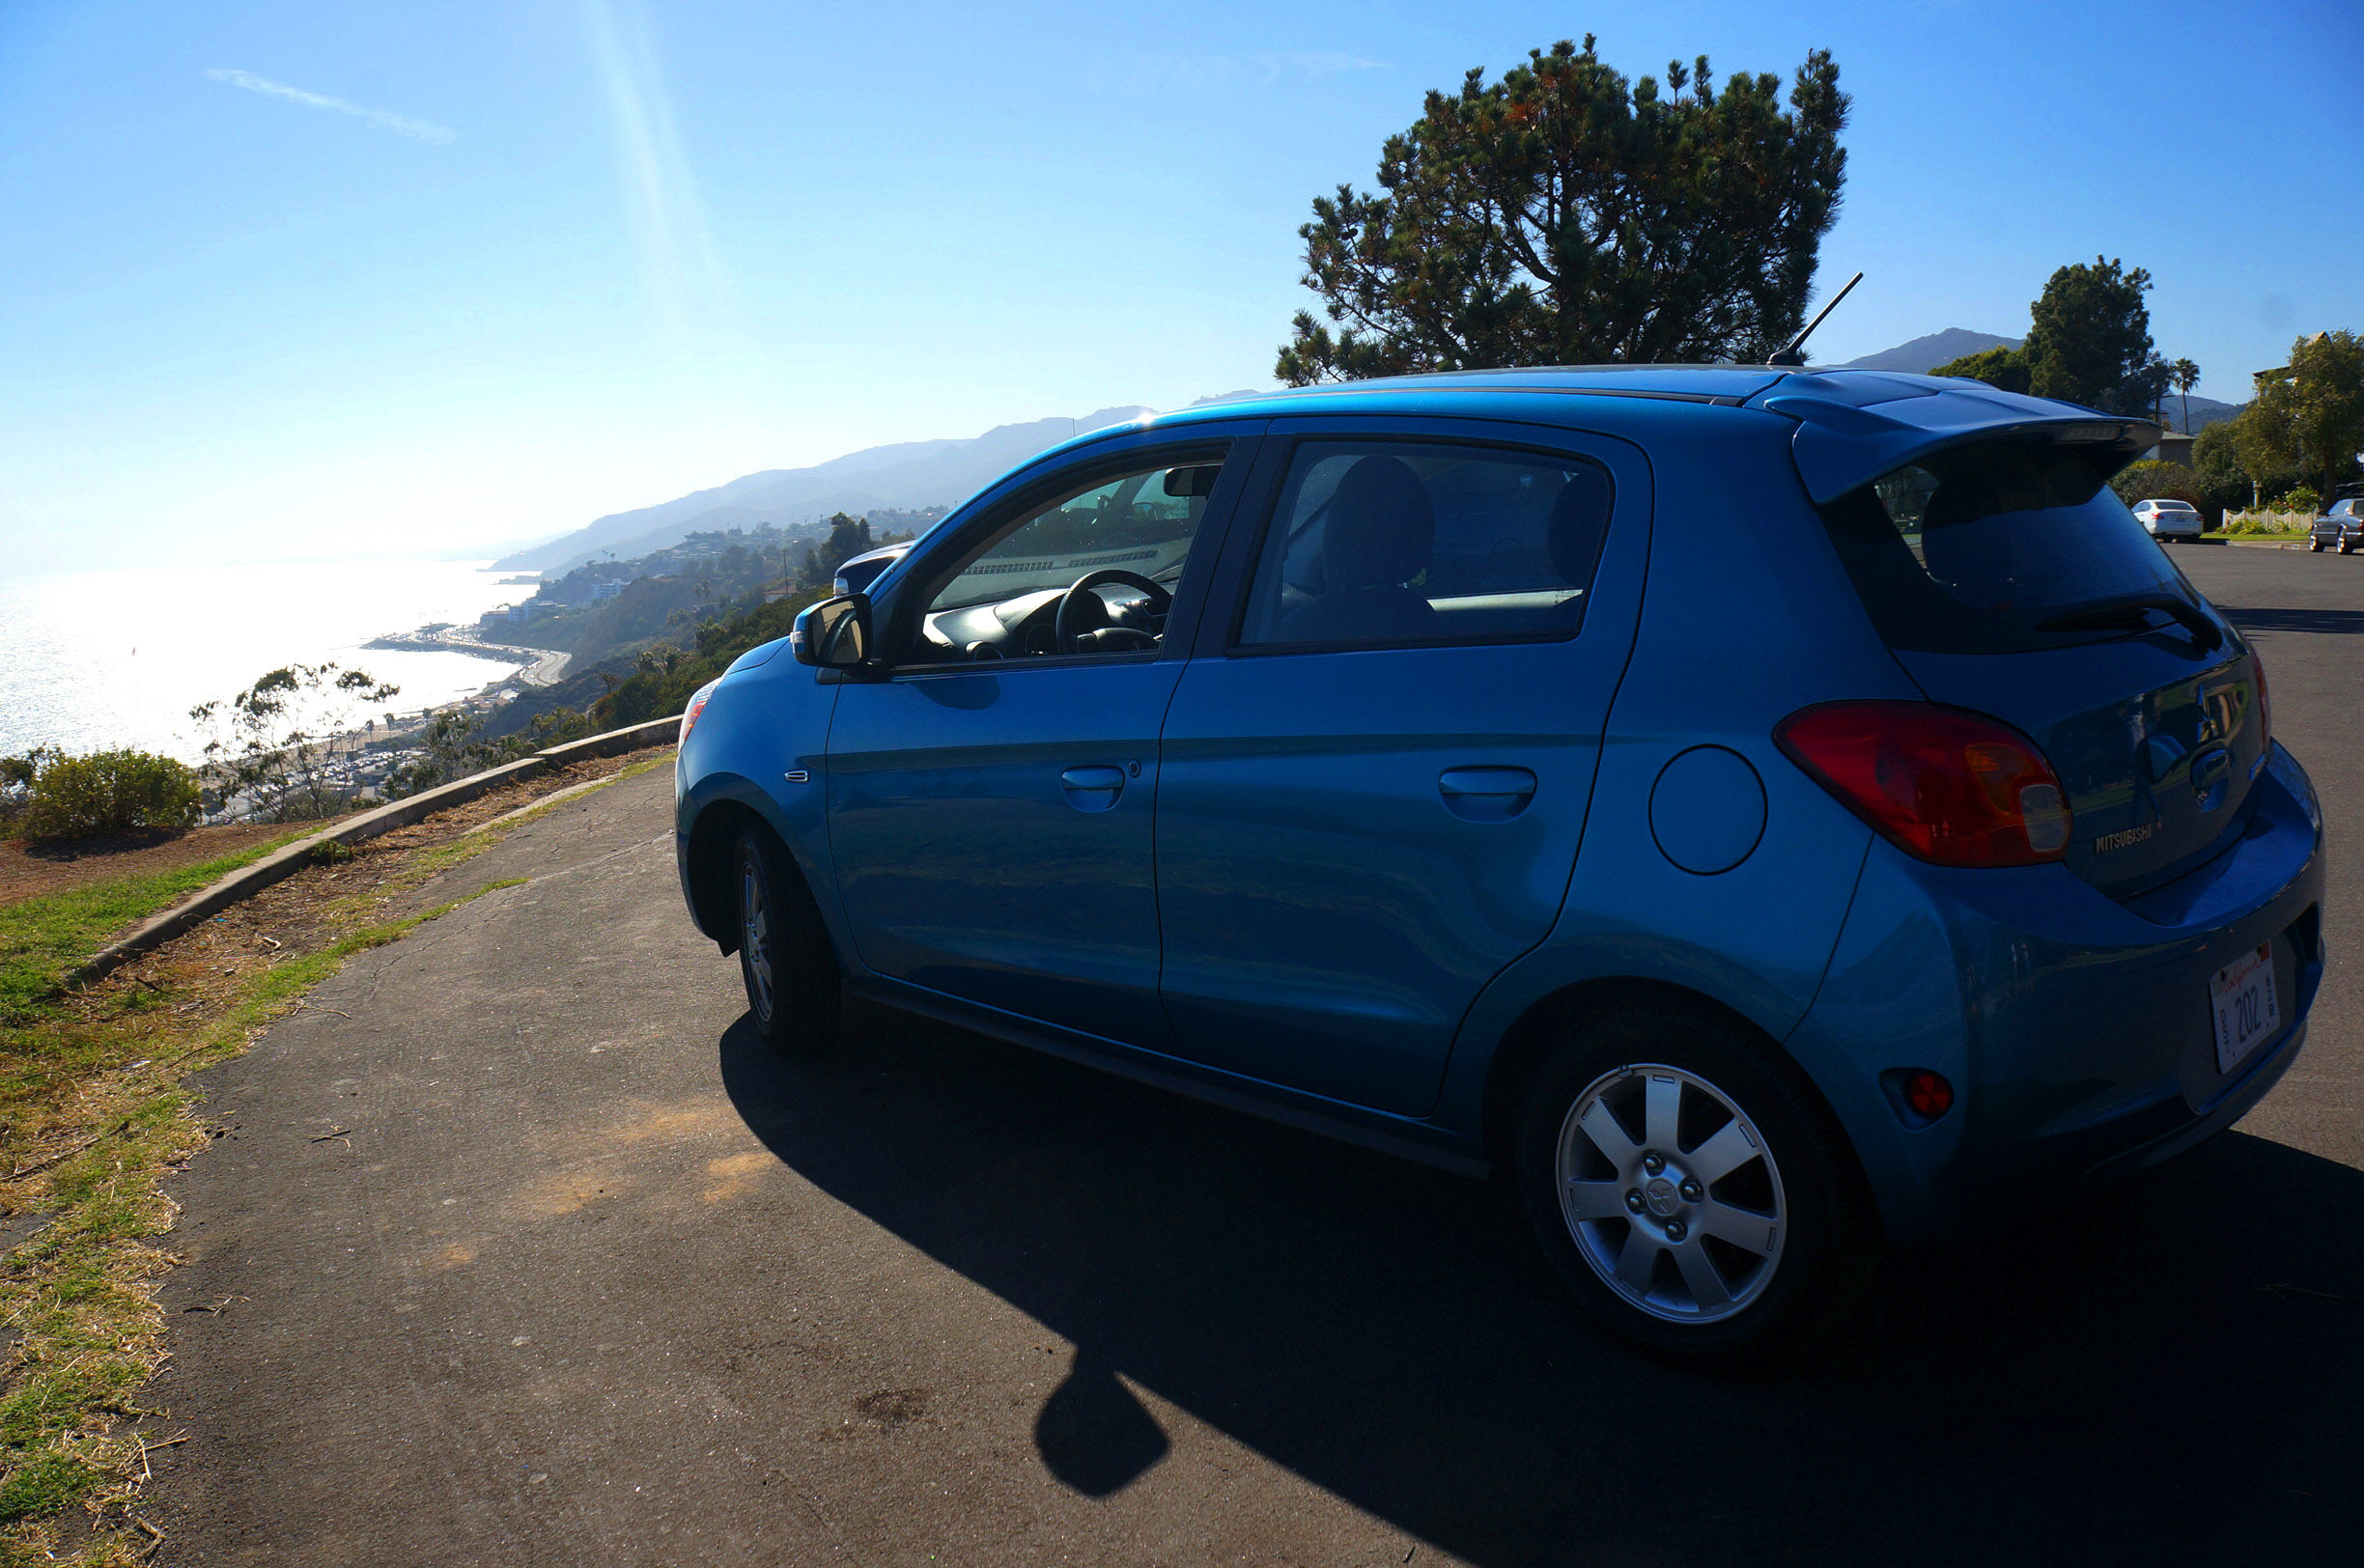 Best Car for City Driving: 2015 Mitsubishi Mirage